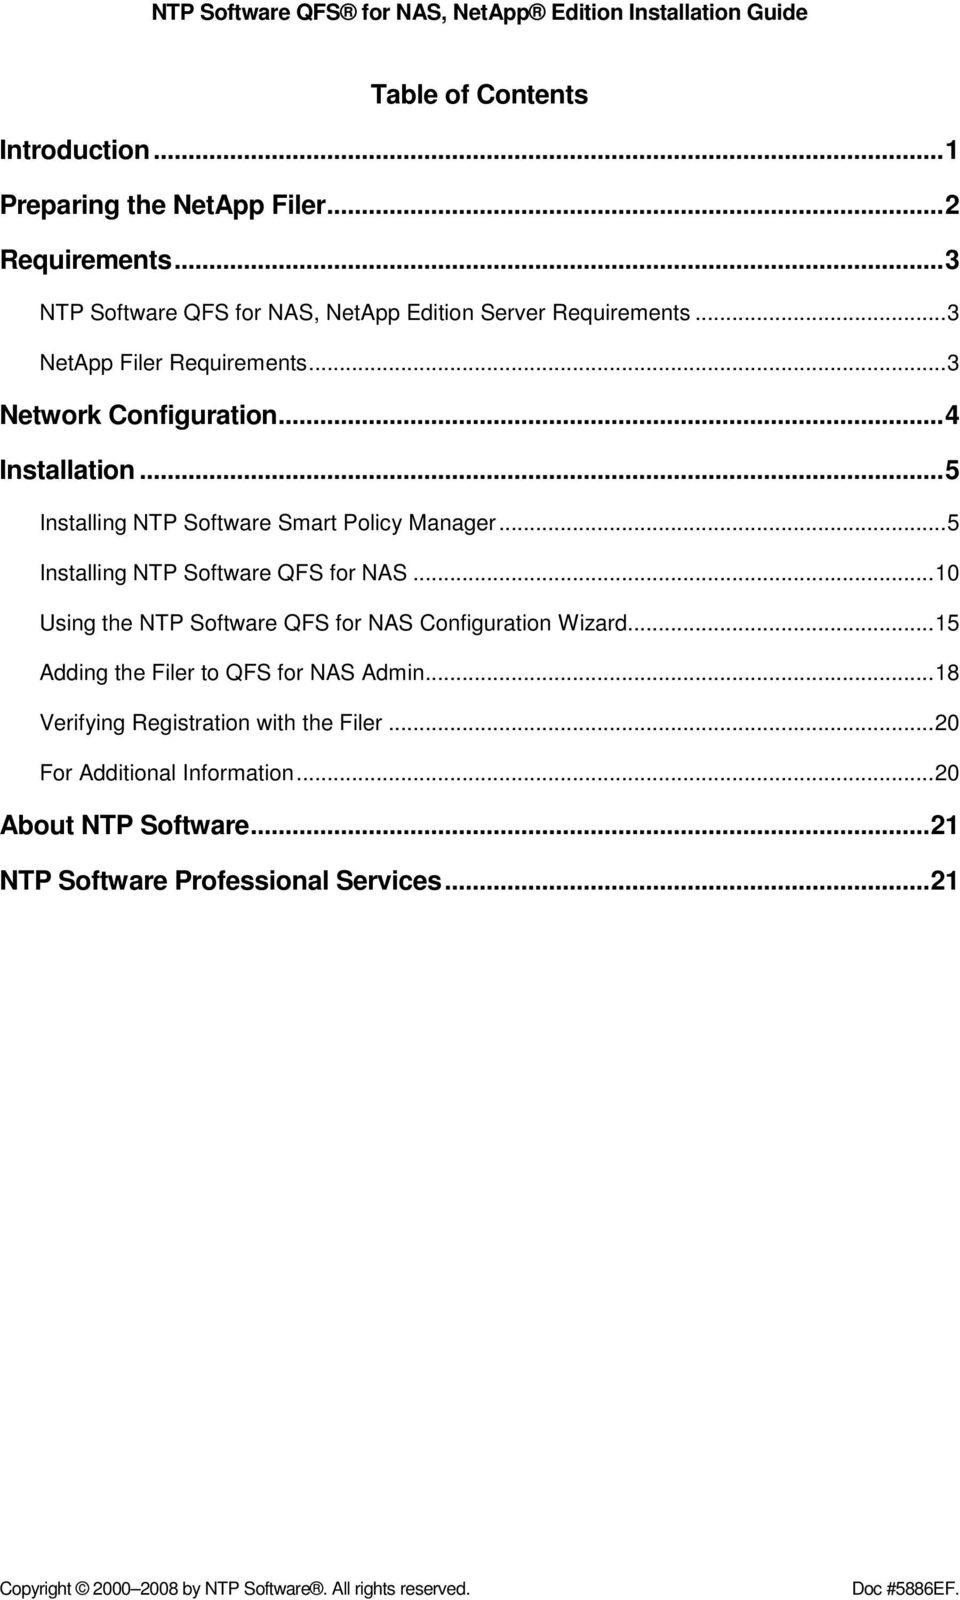 ..5 Installing NTP Software QFS for NAS...10 Using the NTP Software QFS for NAS Configuration Wizard...15 Adding the Filer to QFS for NAS Admin.